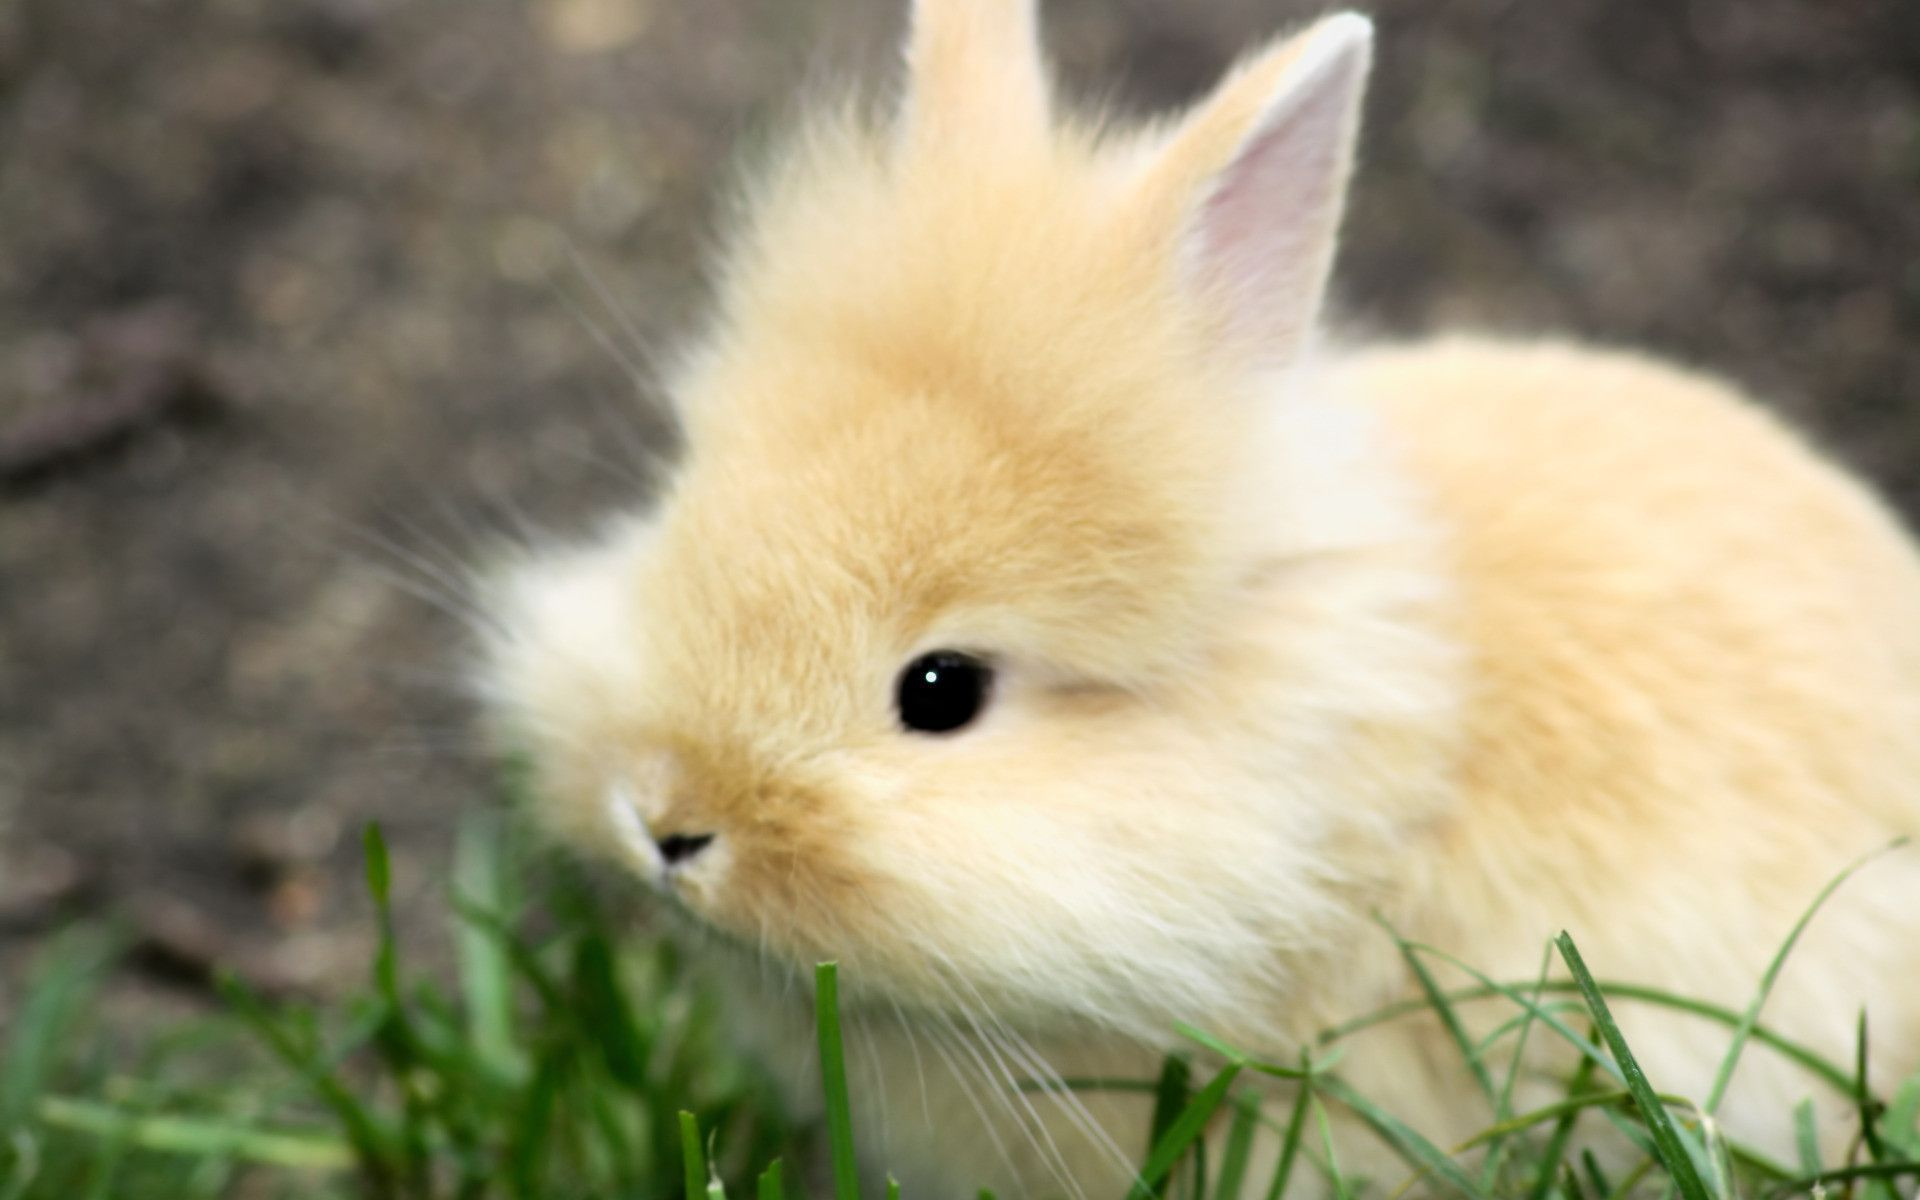 Rabbit Hd Wallpapers Backgrounds Wallpaper Cute Bunny Pictures